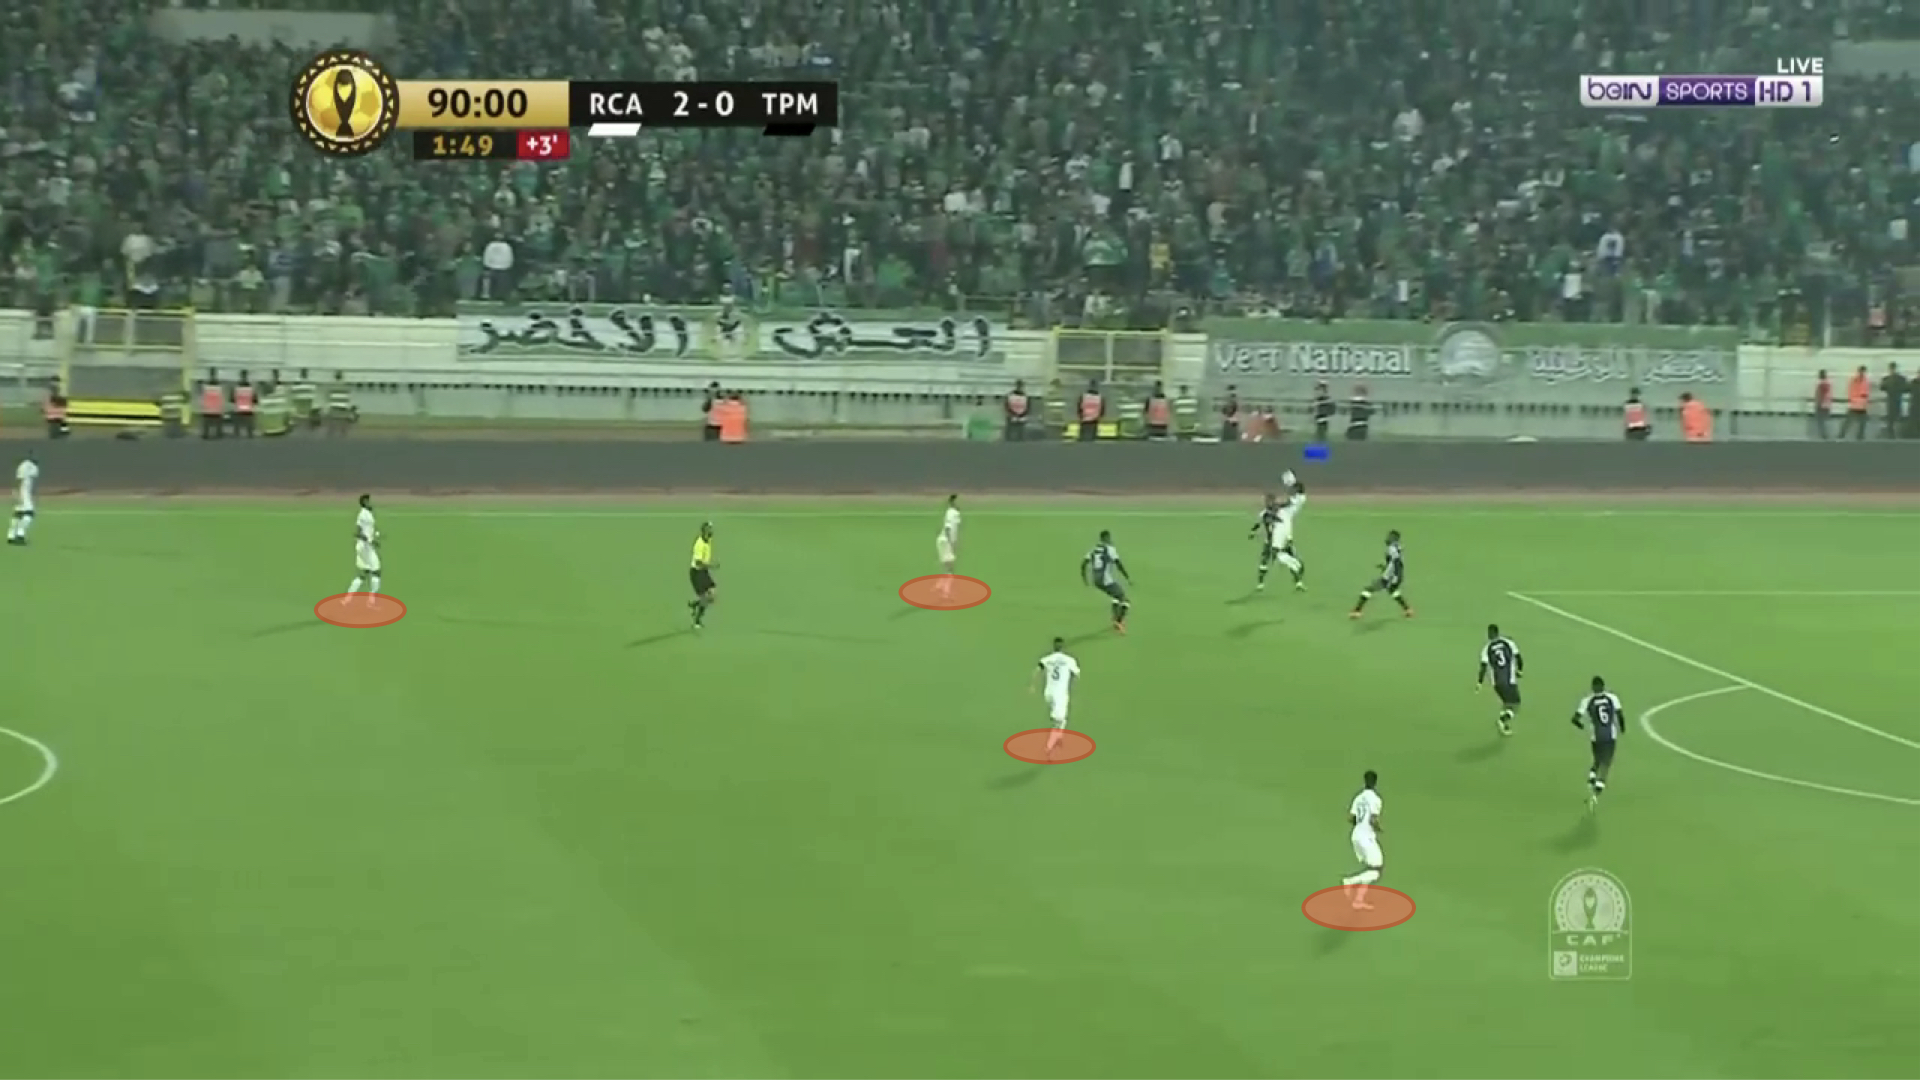 CAF Champions League 2019/20: Raja Casablanca vs TP Mazembe - tactical analysis tactics